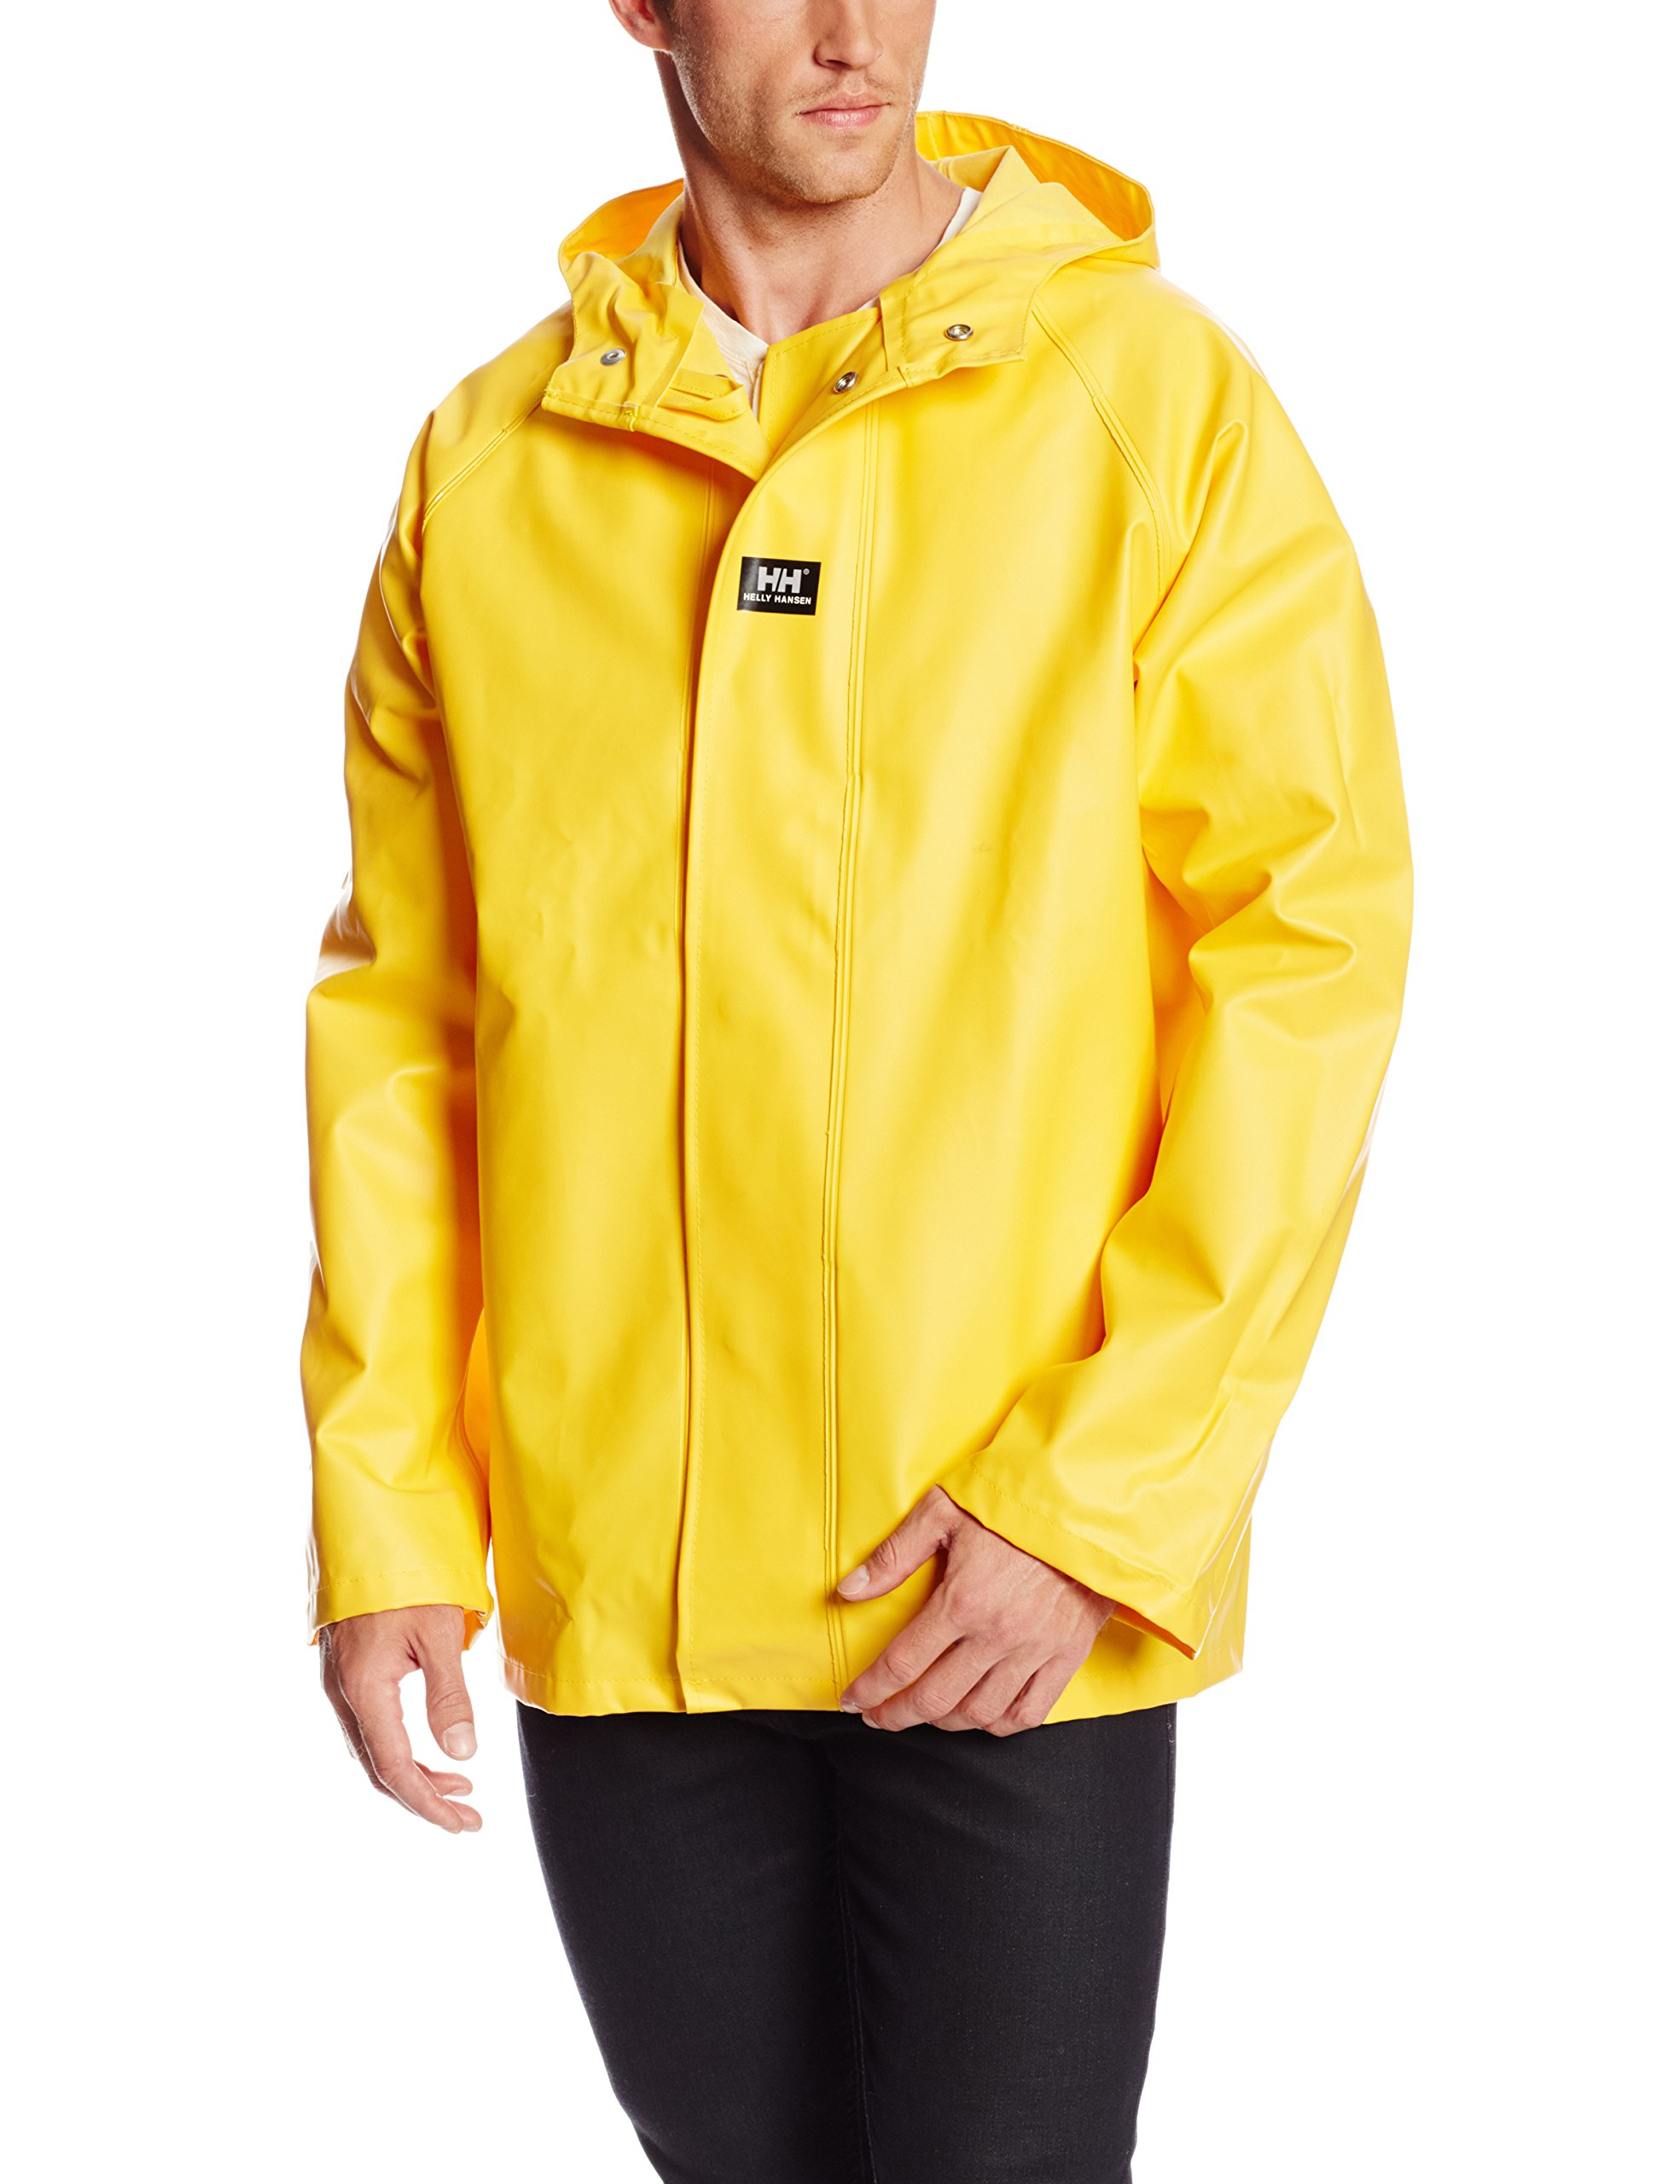 Helly Hansen Workwear Highliner Fishing Jacket, Light Yellow, 4XL